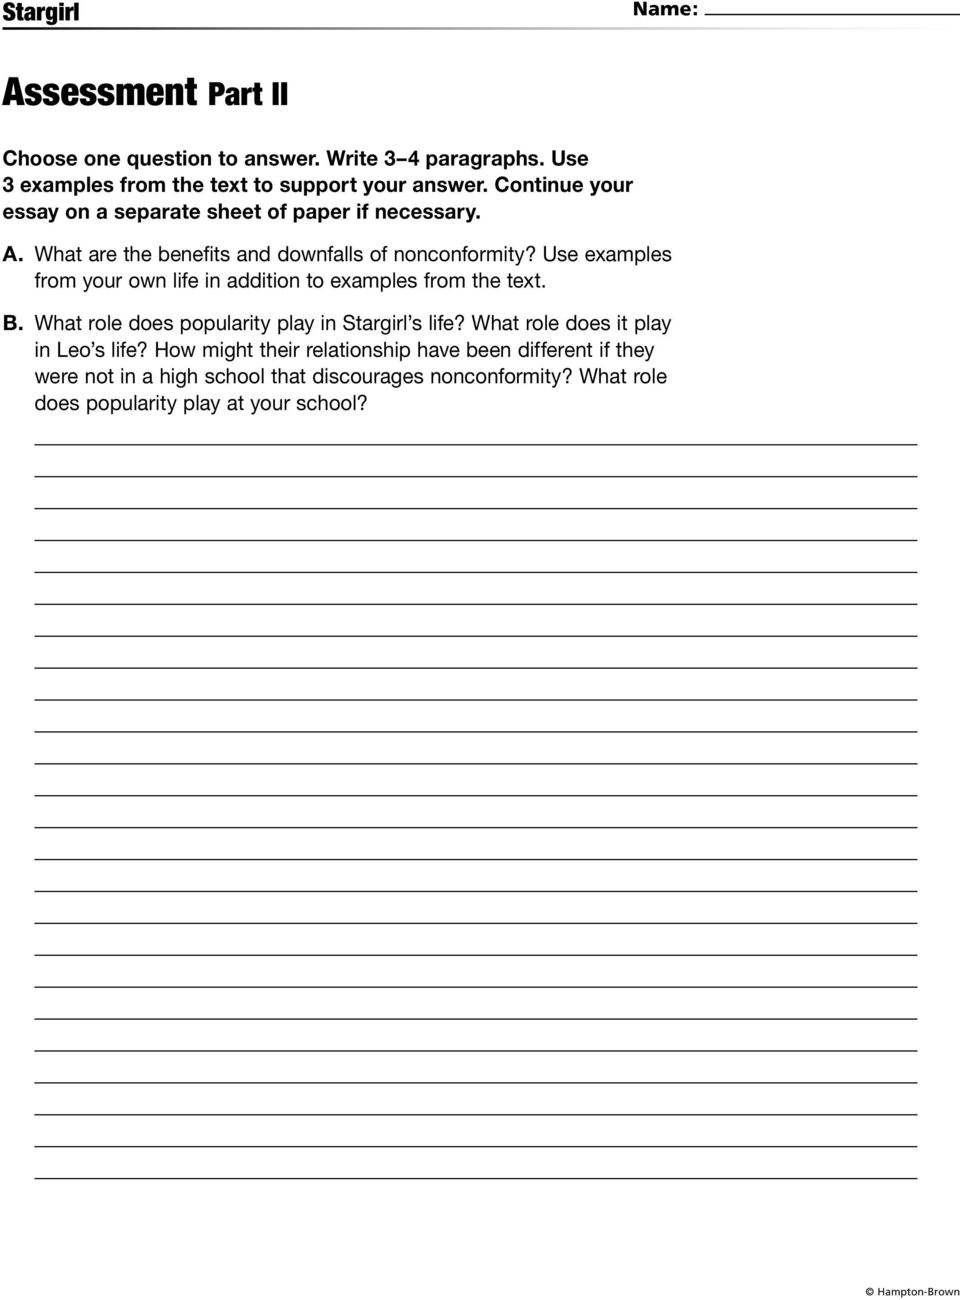 popularity at school essay Essay form means popularity high school essays tyra banks introduce yourself essay in spanish accents essay for scholarship financial need questions and answers.